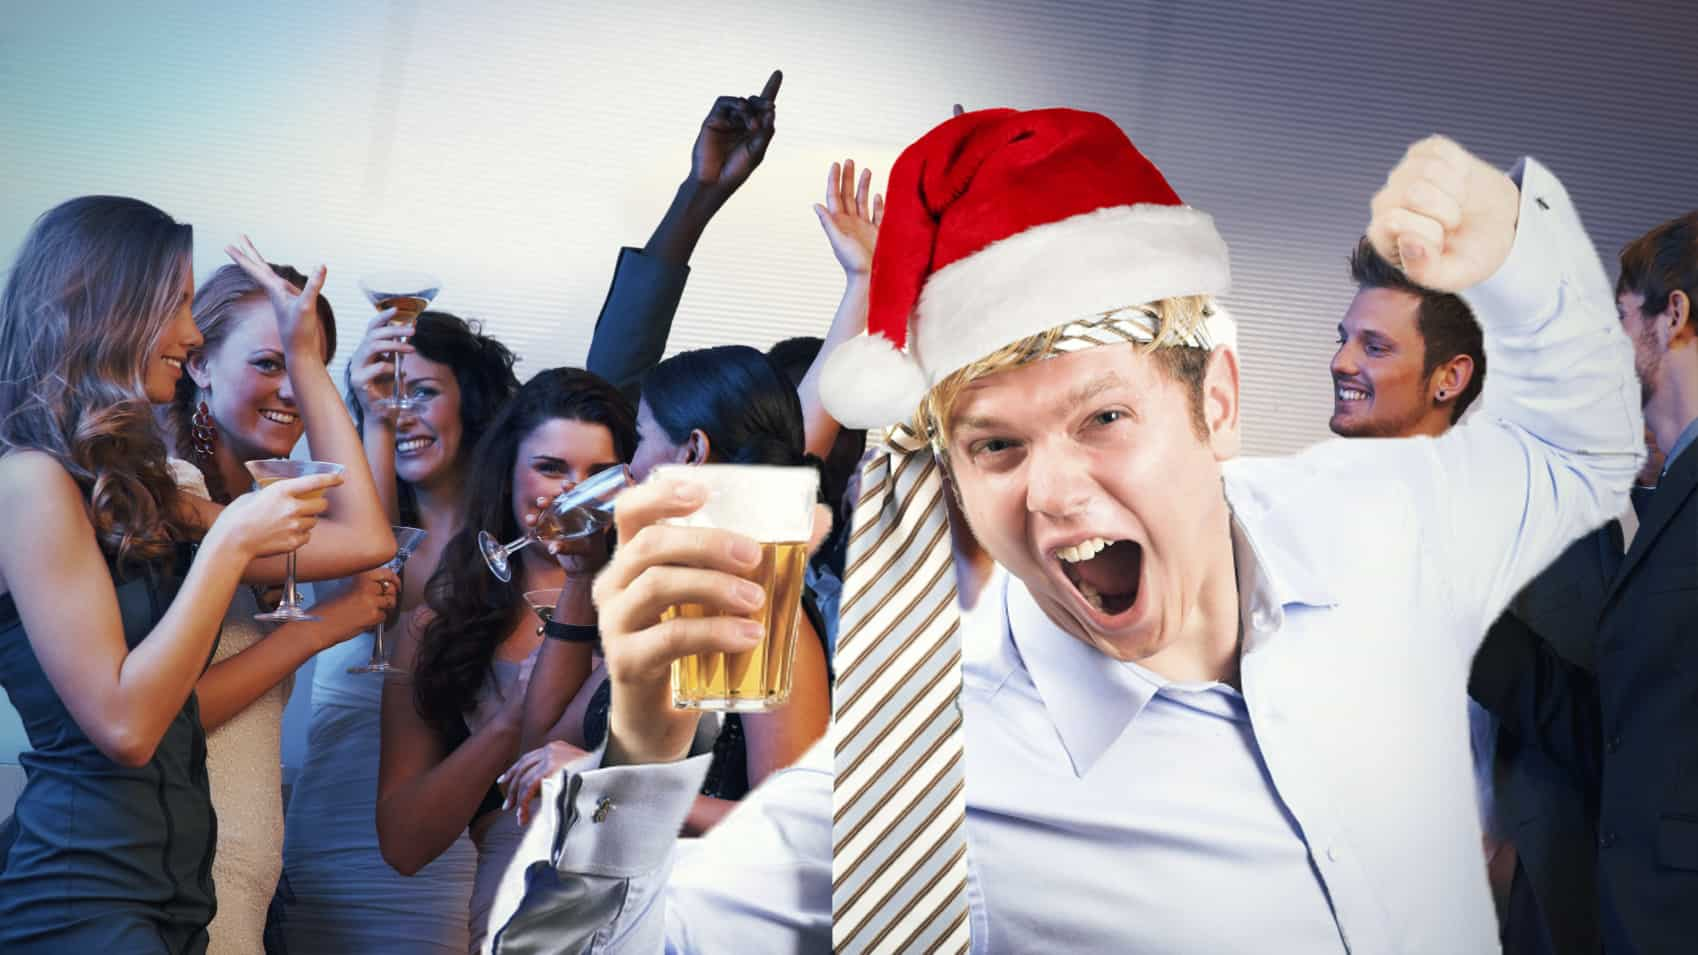 Work Holiday Party To Be Filled With Equal Parts Fun And Regret